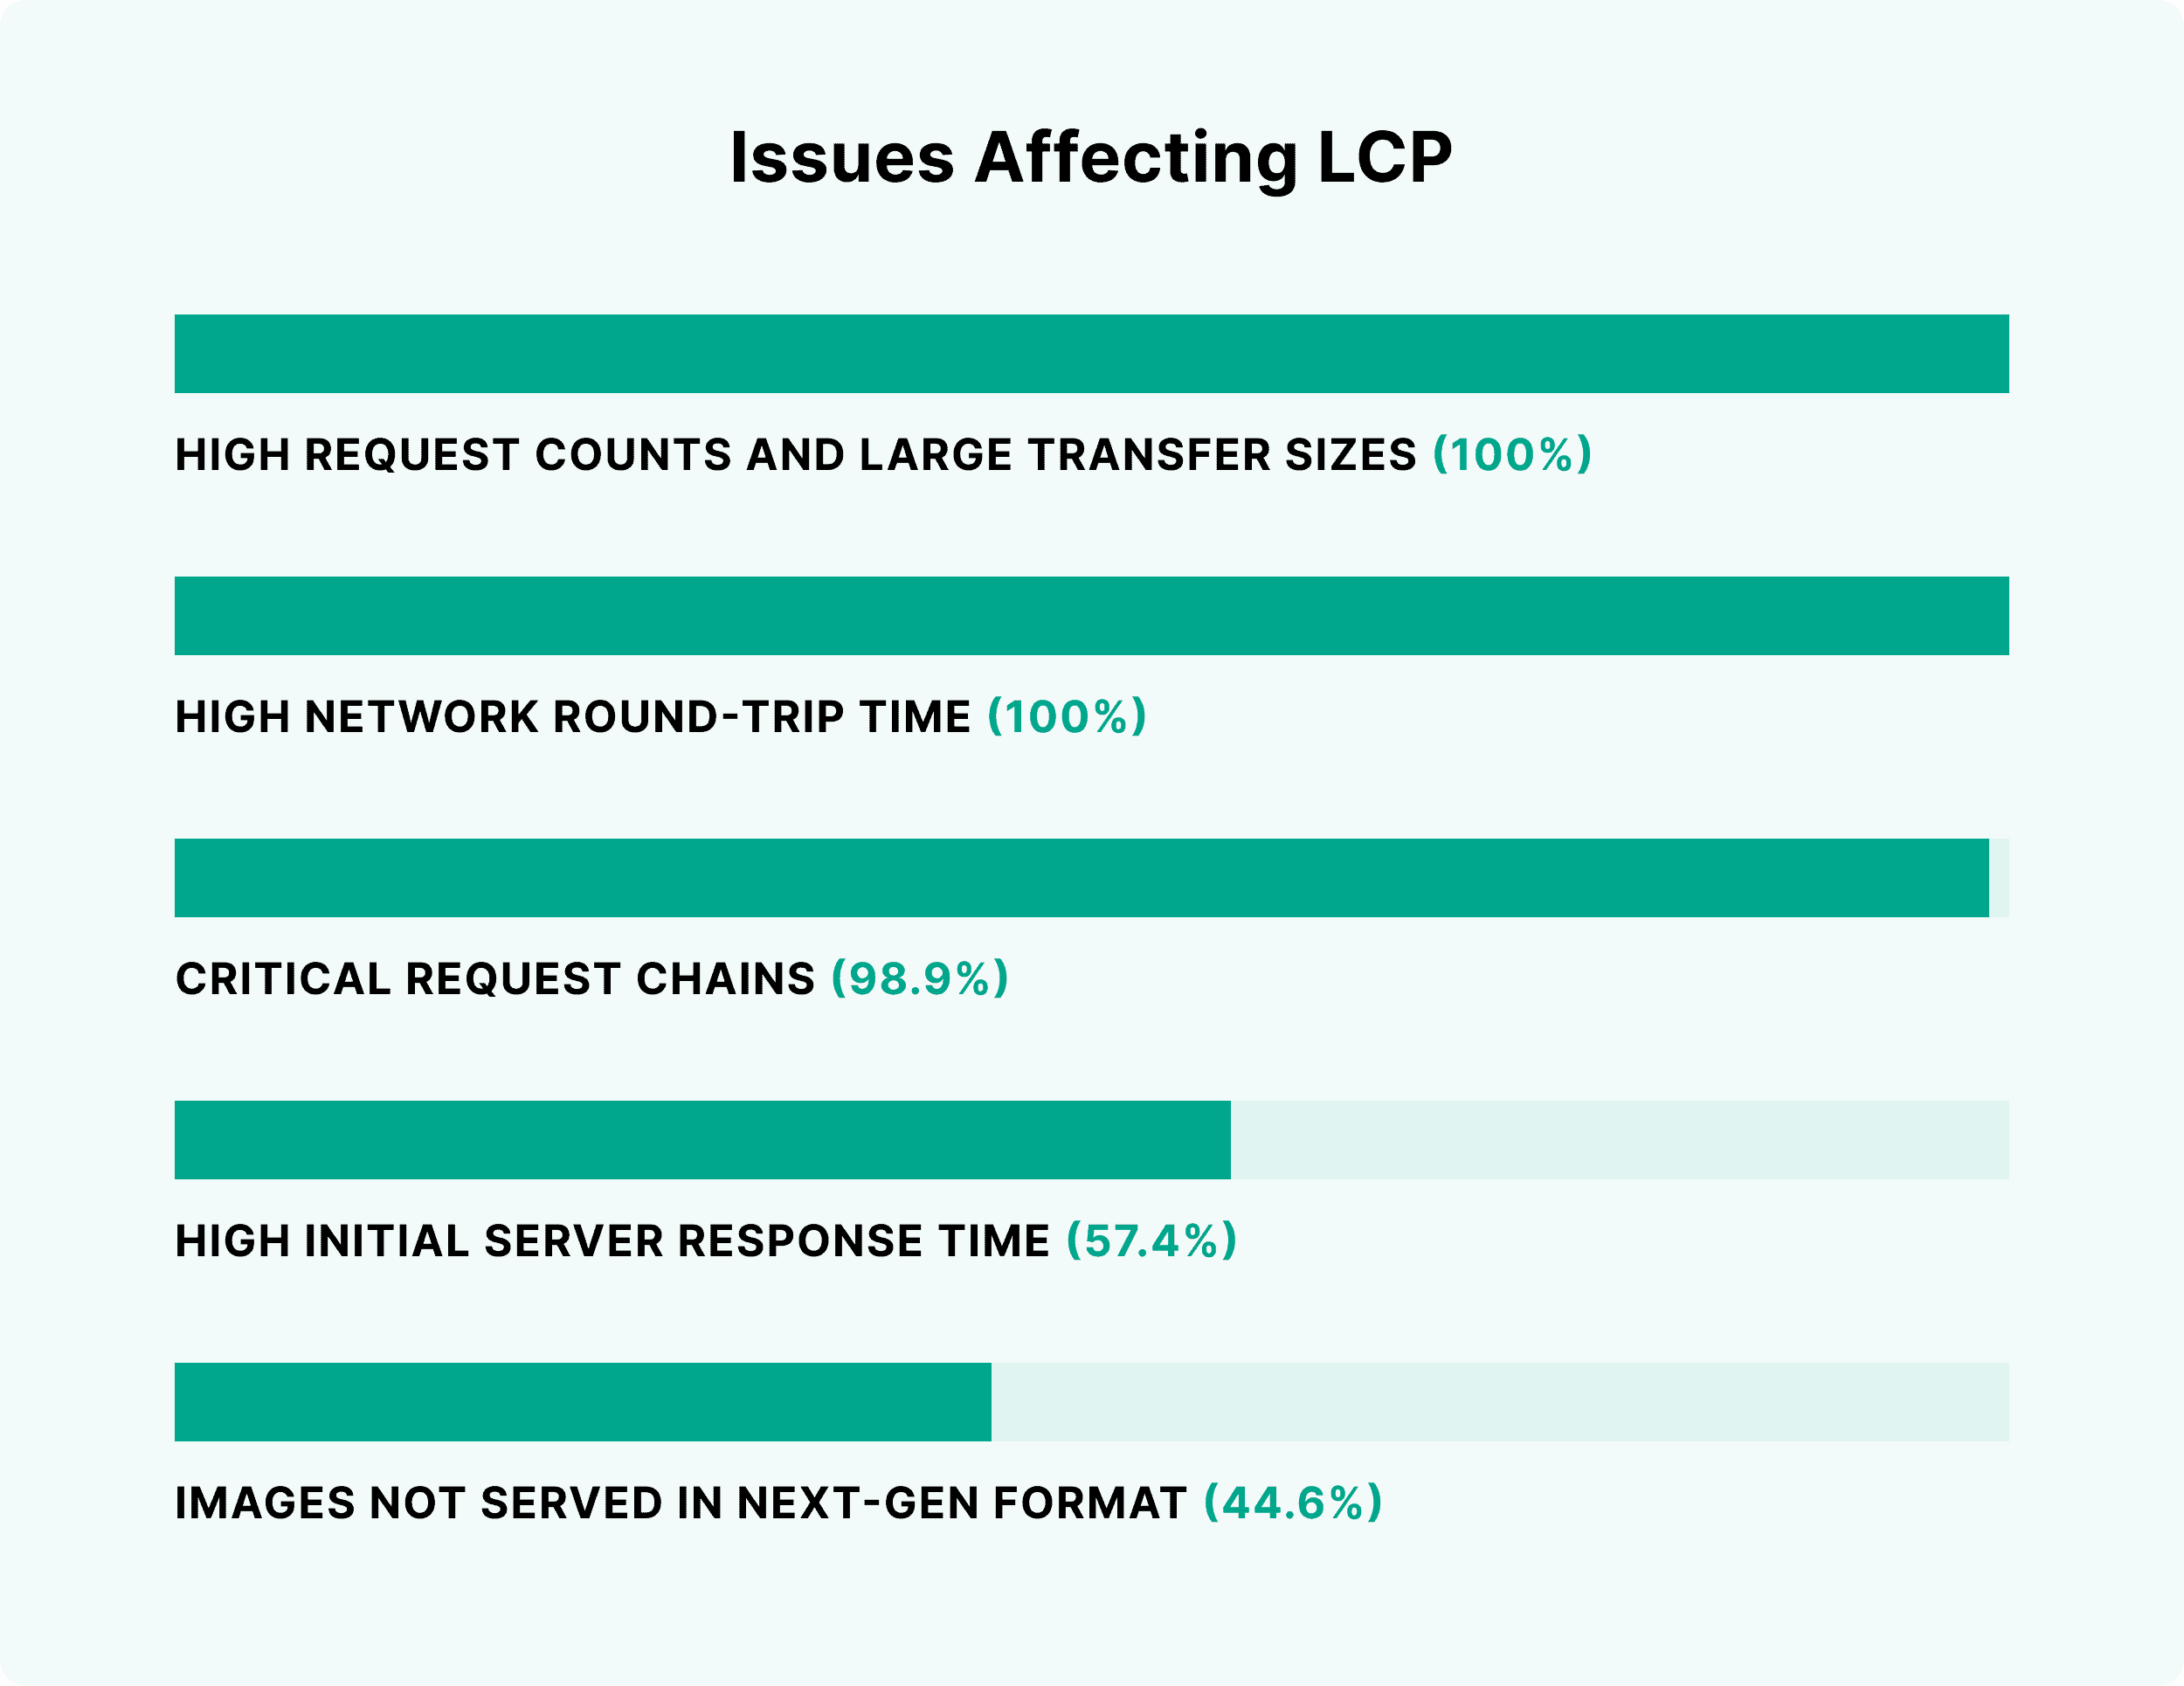 Issues affecting LCP